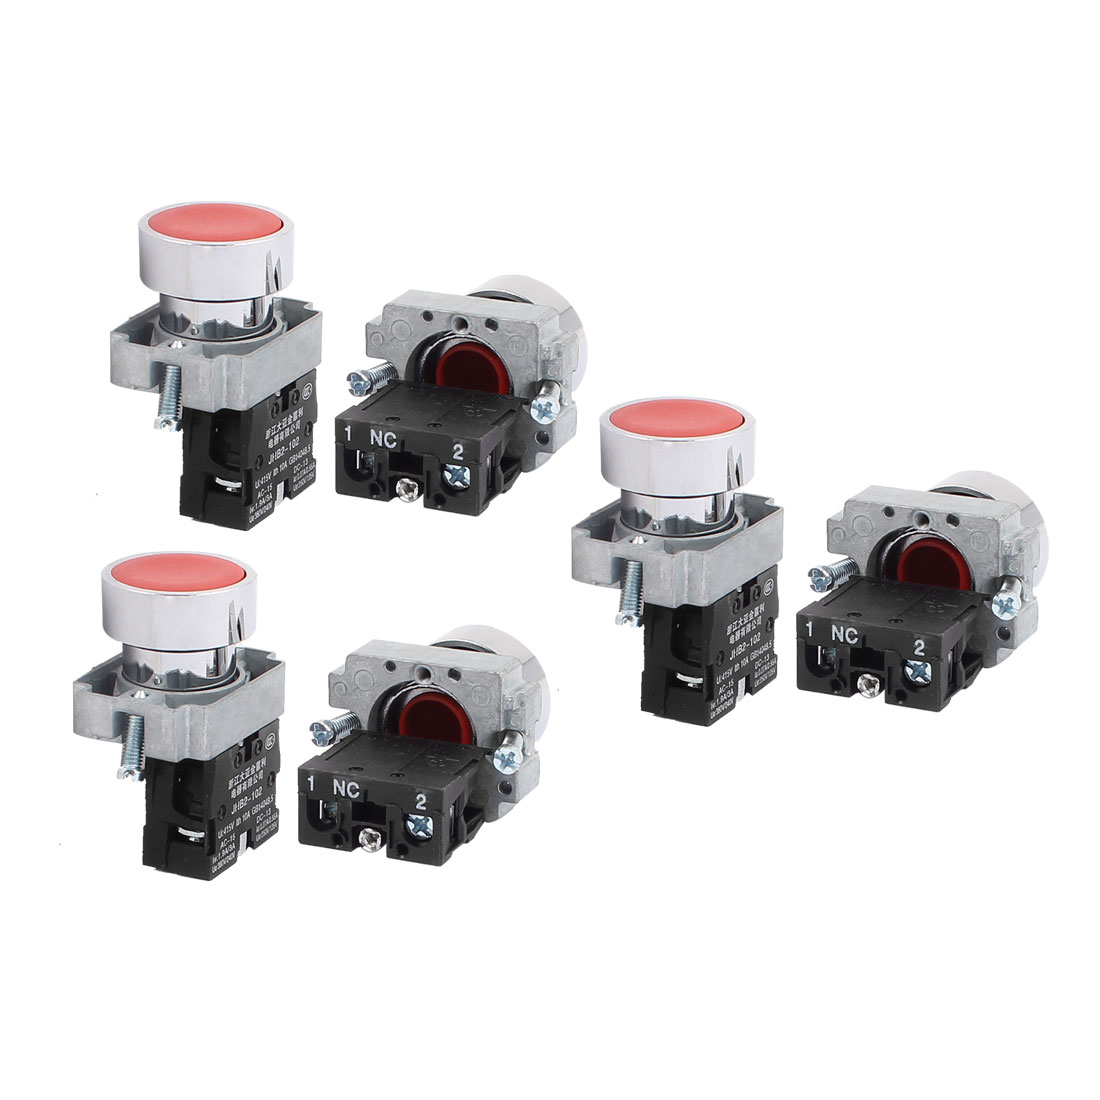 AC 415V 10A Momentary NO Red Push Button Switch Contact Block 6PCS